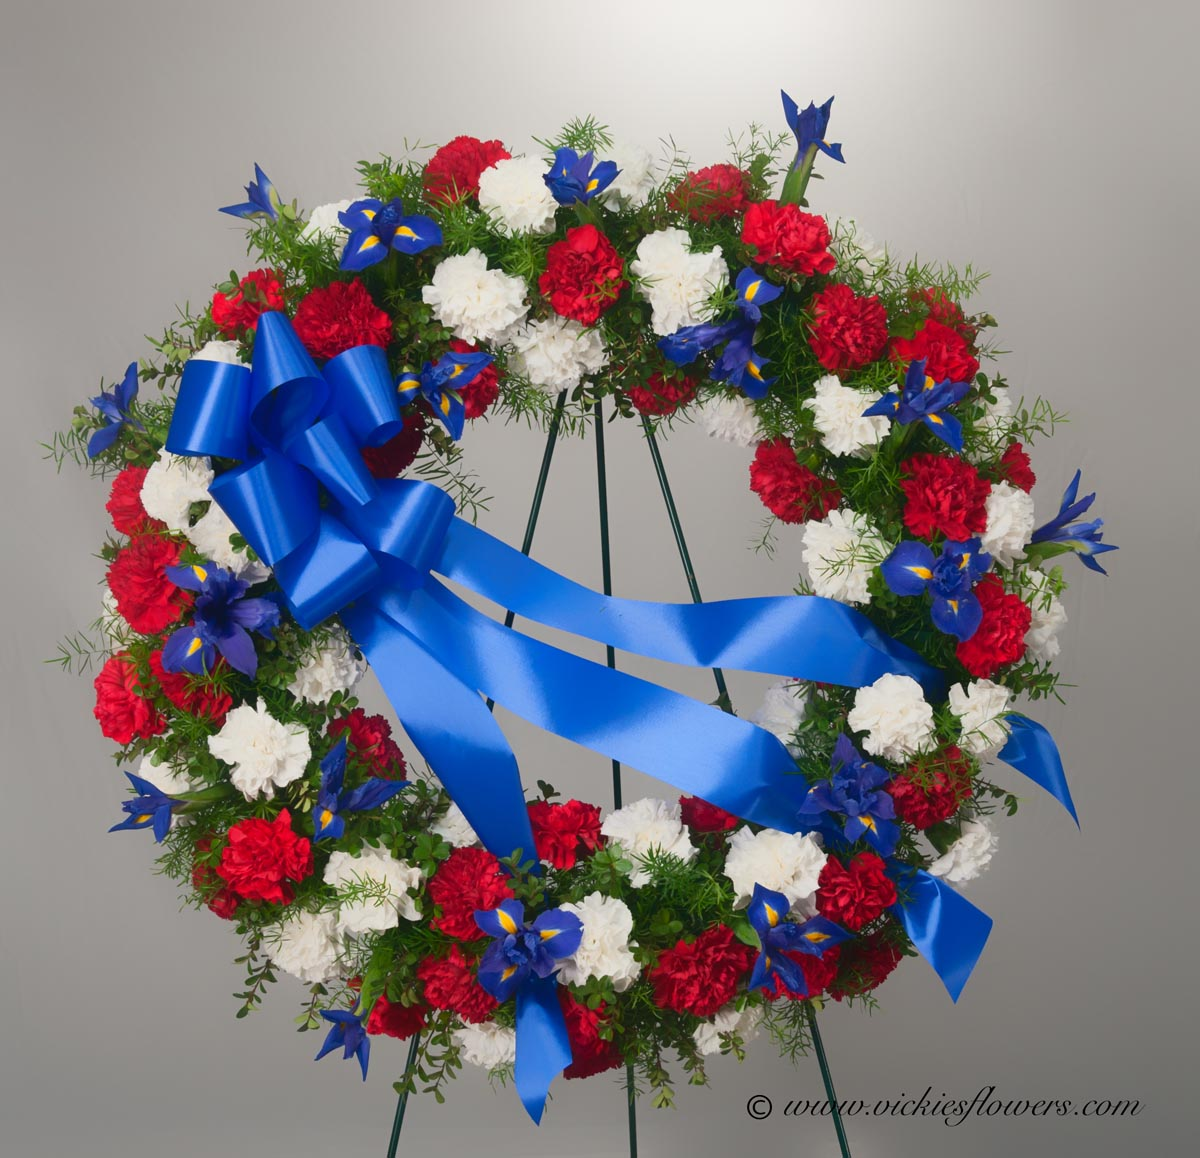 Funeral crosses standing sprays vickies flowers brighton co standing funeral spray 037 275 plus tax and delivery large circular wreath in patriotic or military colors of red white and blue flowers include red izmirmasajfo